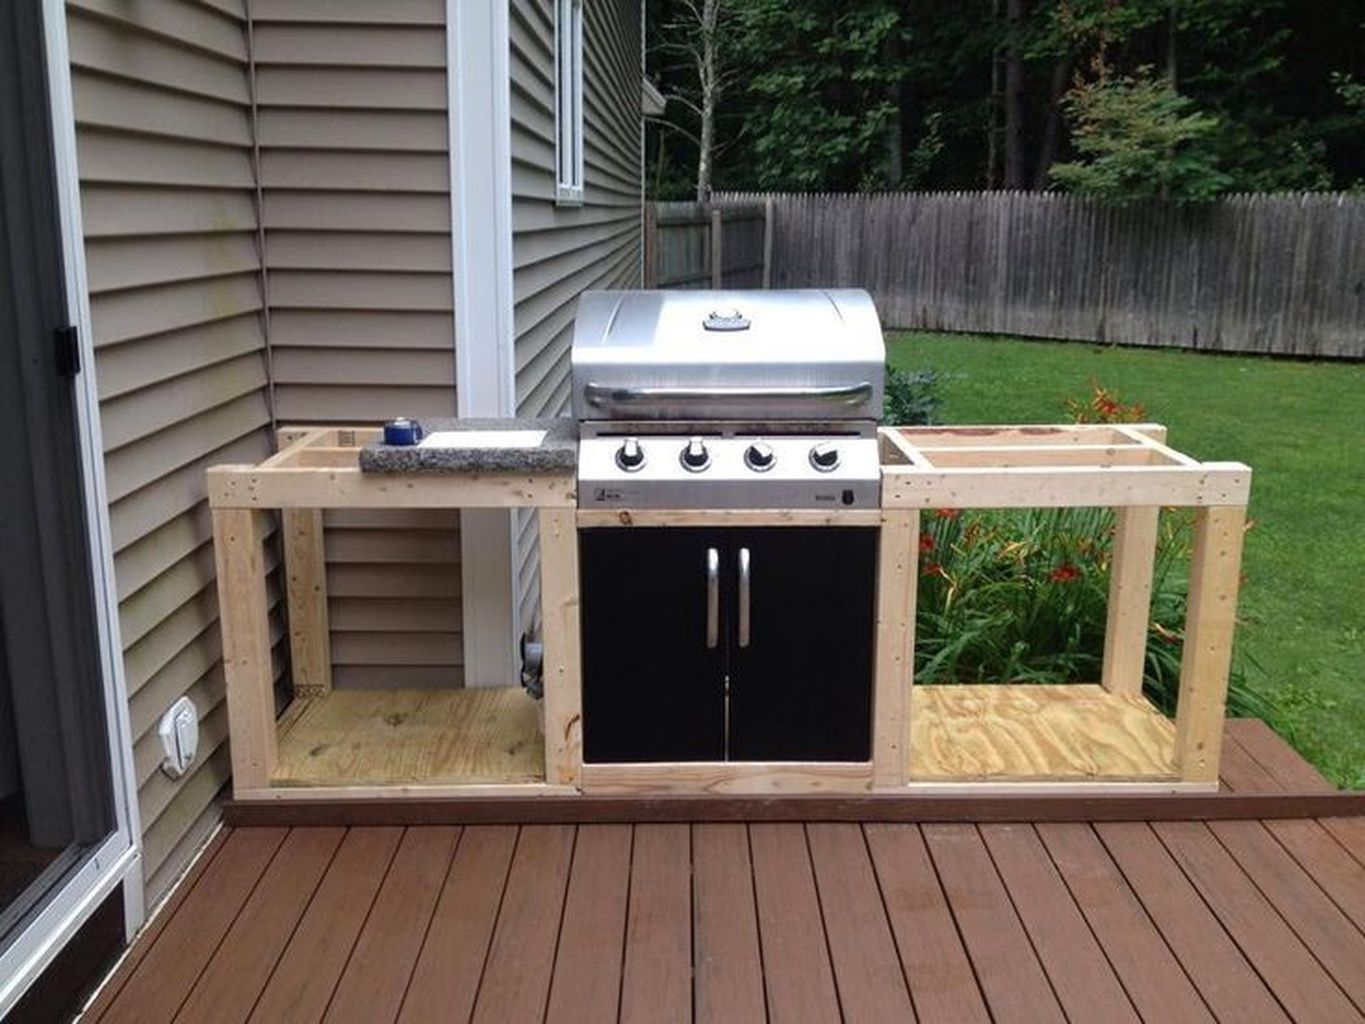 85 Best Outdoor Kitchen and Grill Ideas for Summer ... on Patio Grill Station id=49639